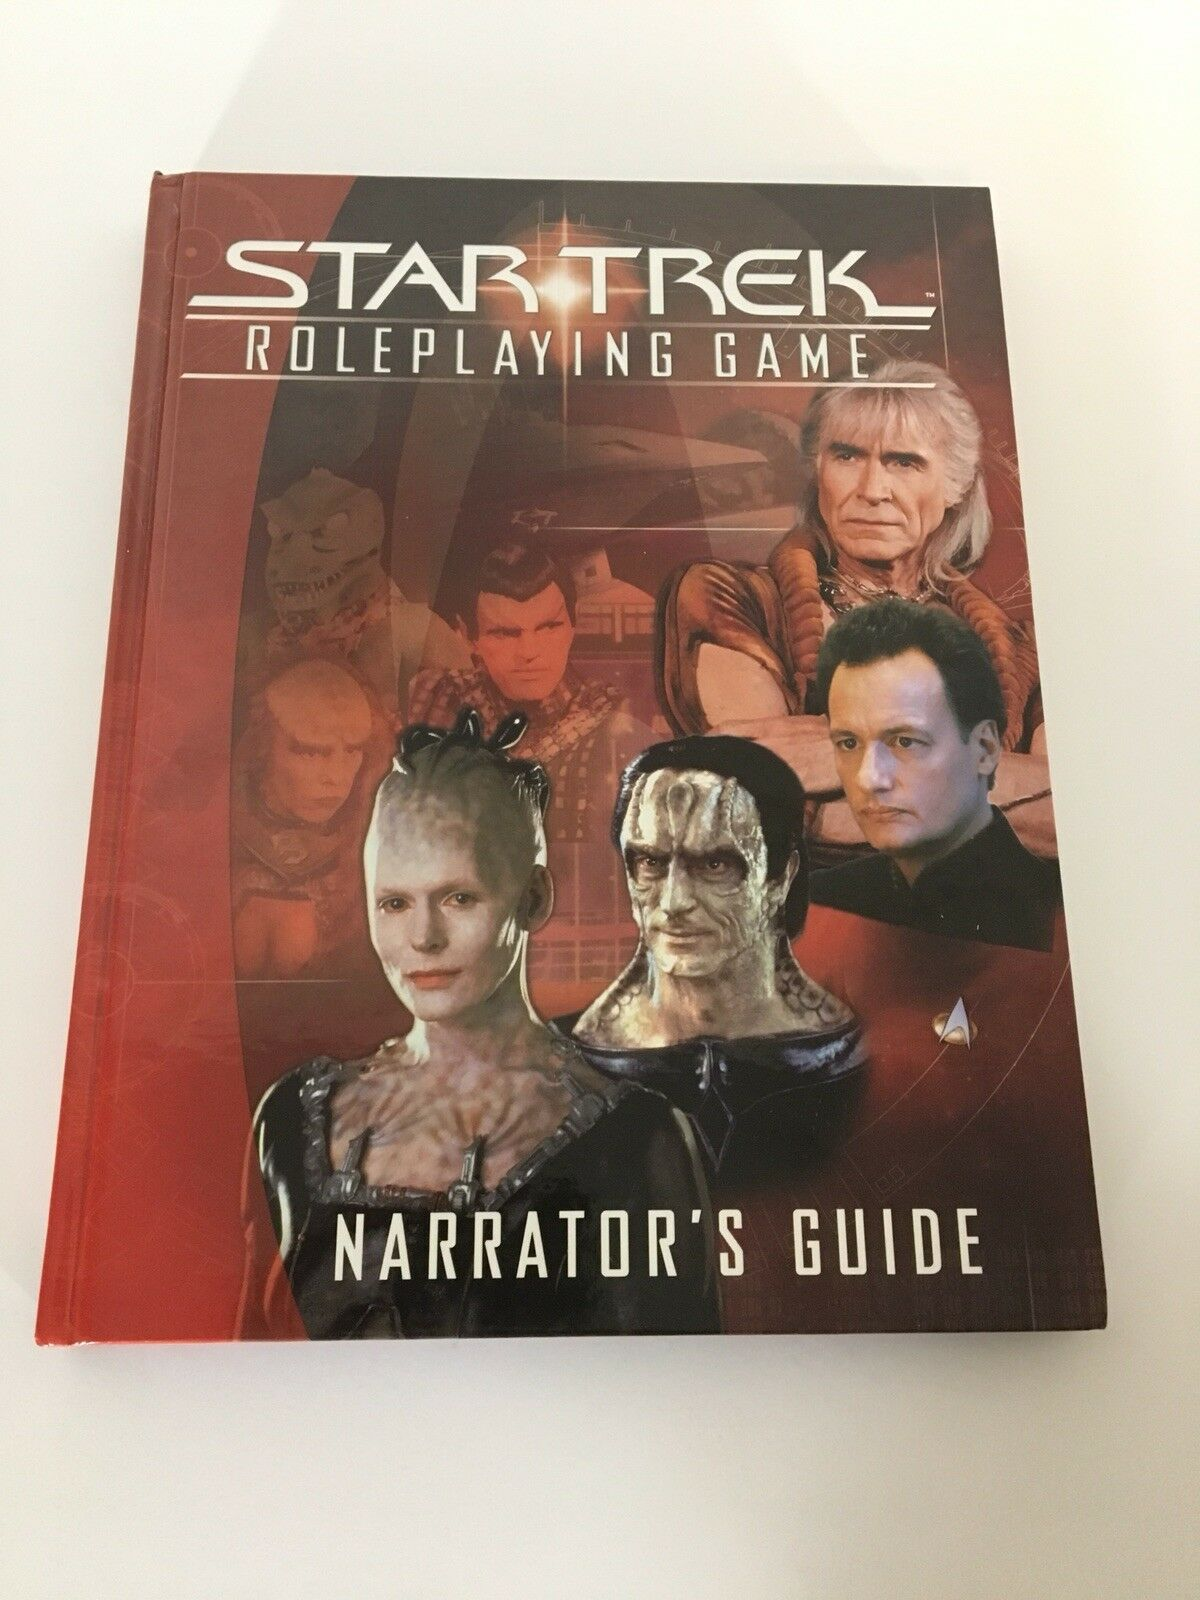 Star Trek Narrator's Guide Hardcover HC Decipher Role Playing Game RPG Book 2002